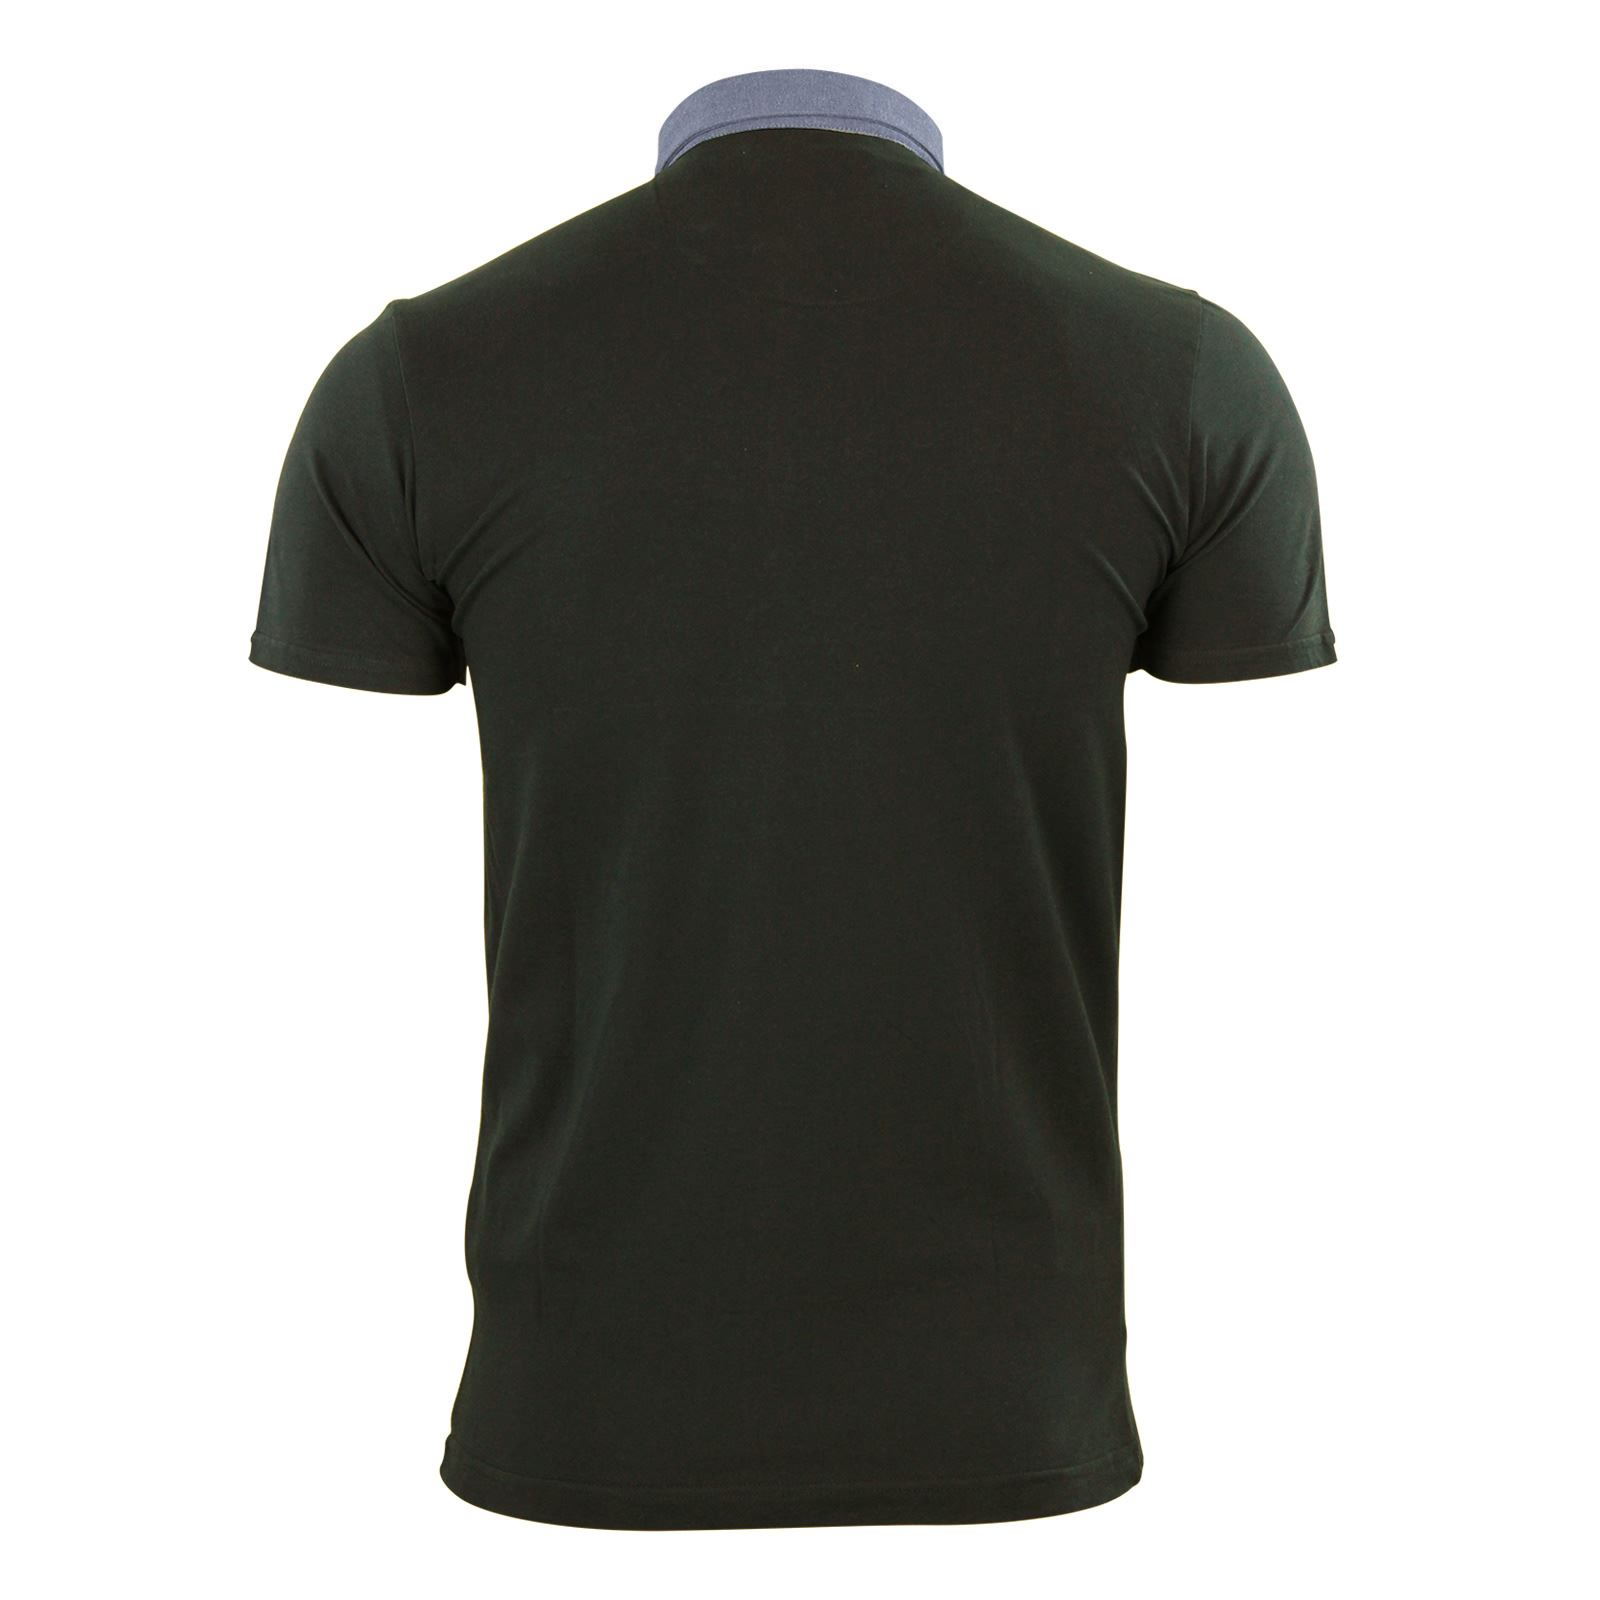 Brave-Soul-Glover-Mens-Polo-T-Shirt-Cotton-Collared-Short-Sleeve-Casual-Top thumbnail 15